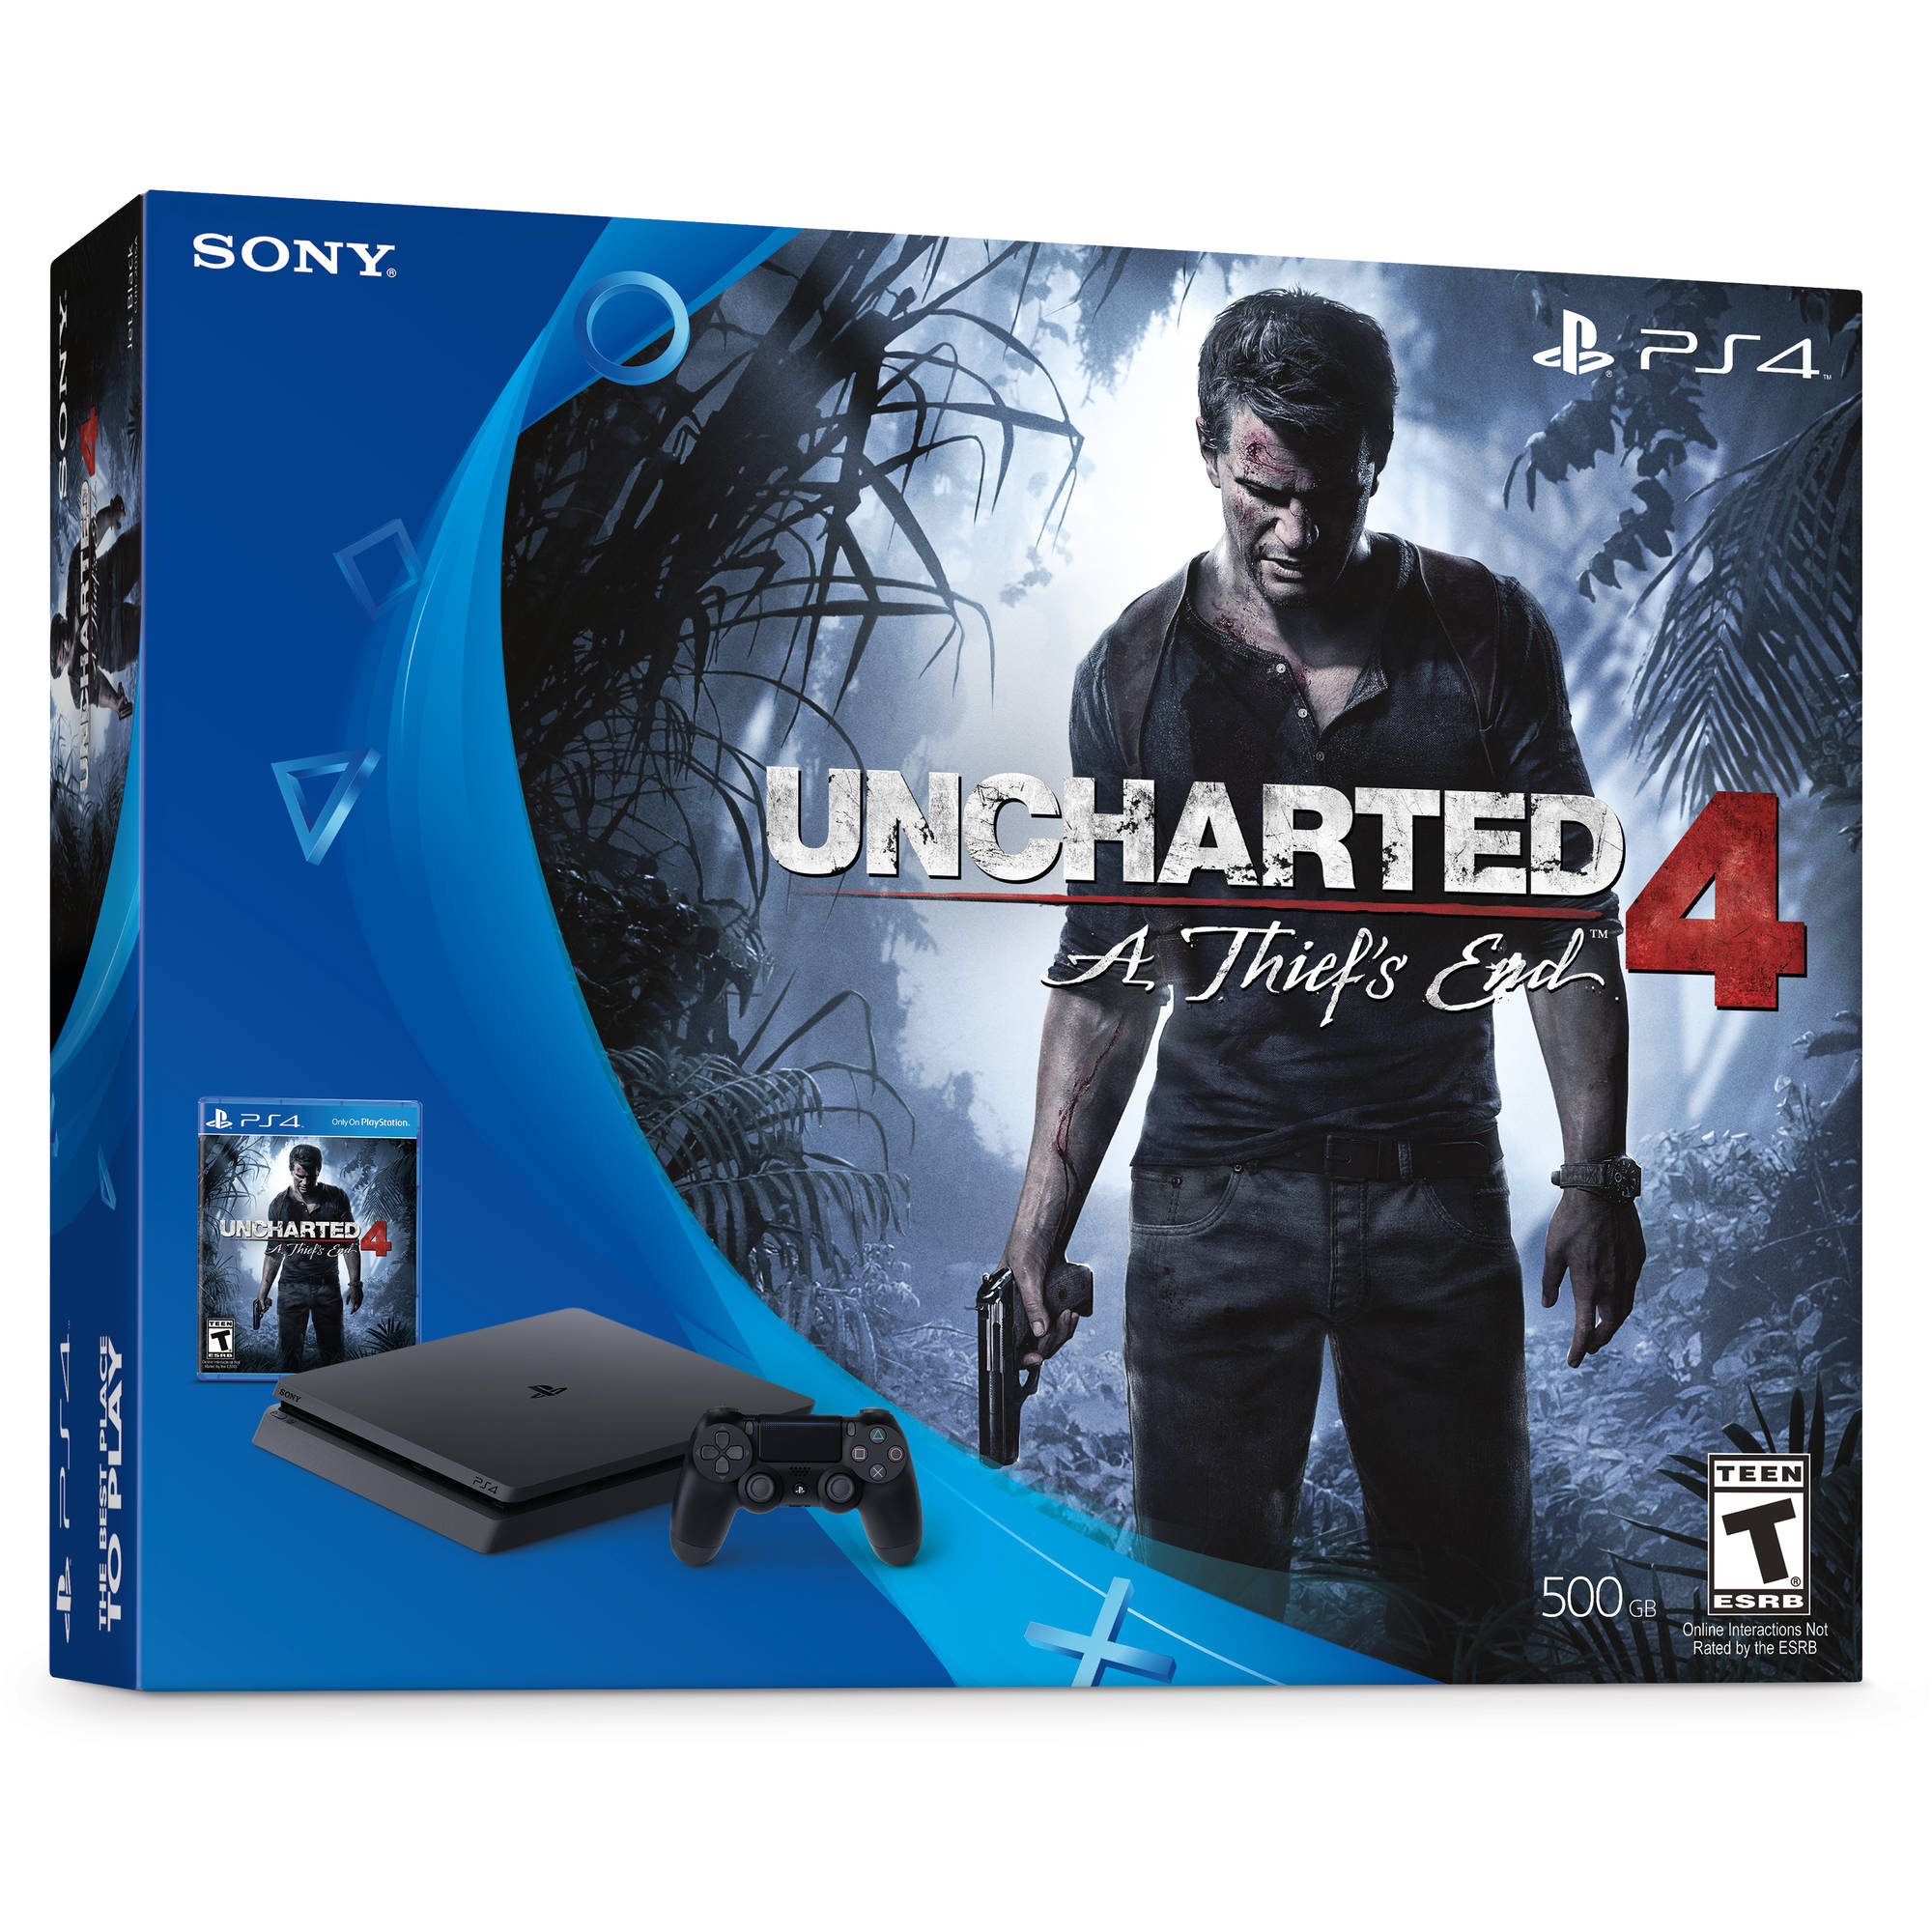 PlayStation 4 Slim 500GB Uncharted 4 Bundle, Black, 3001504